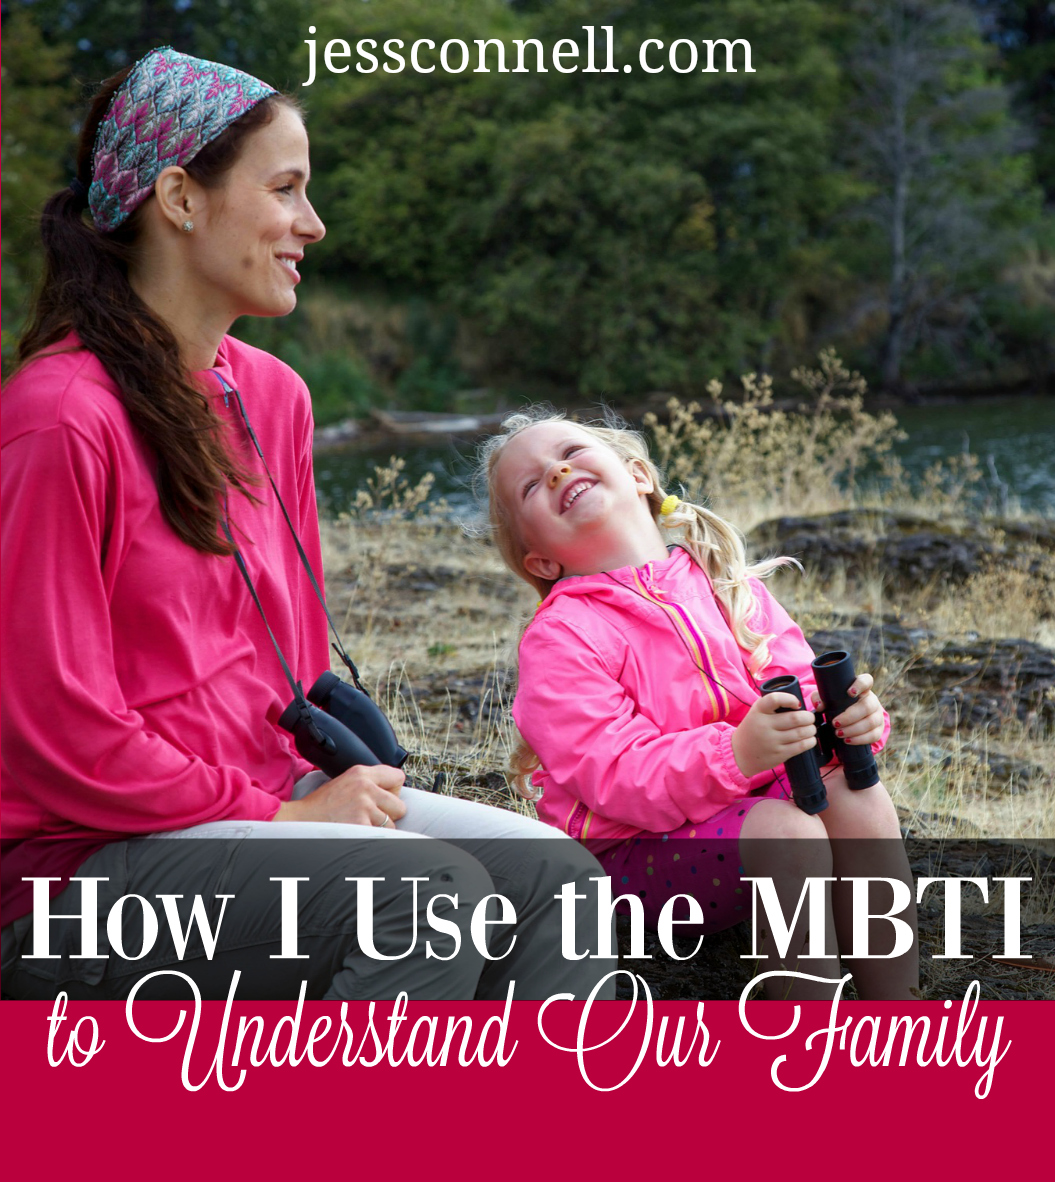 How I Use the MBTI to Understand Our Family // jessconnell.com